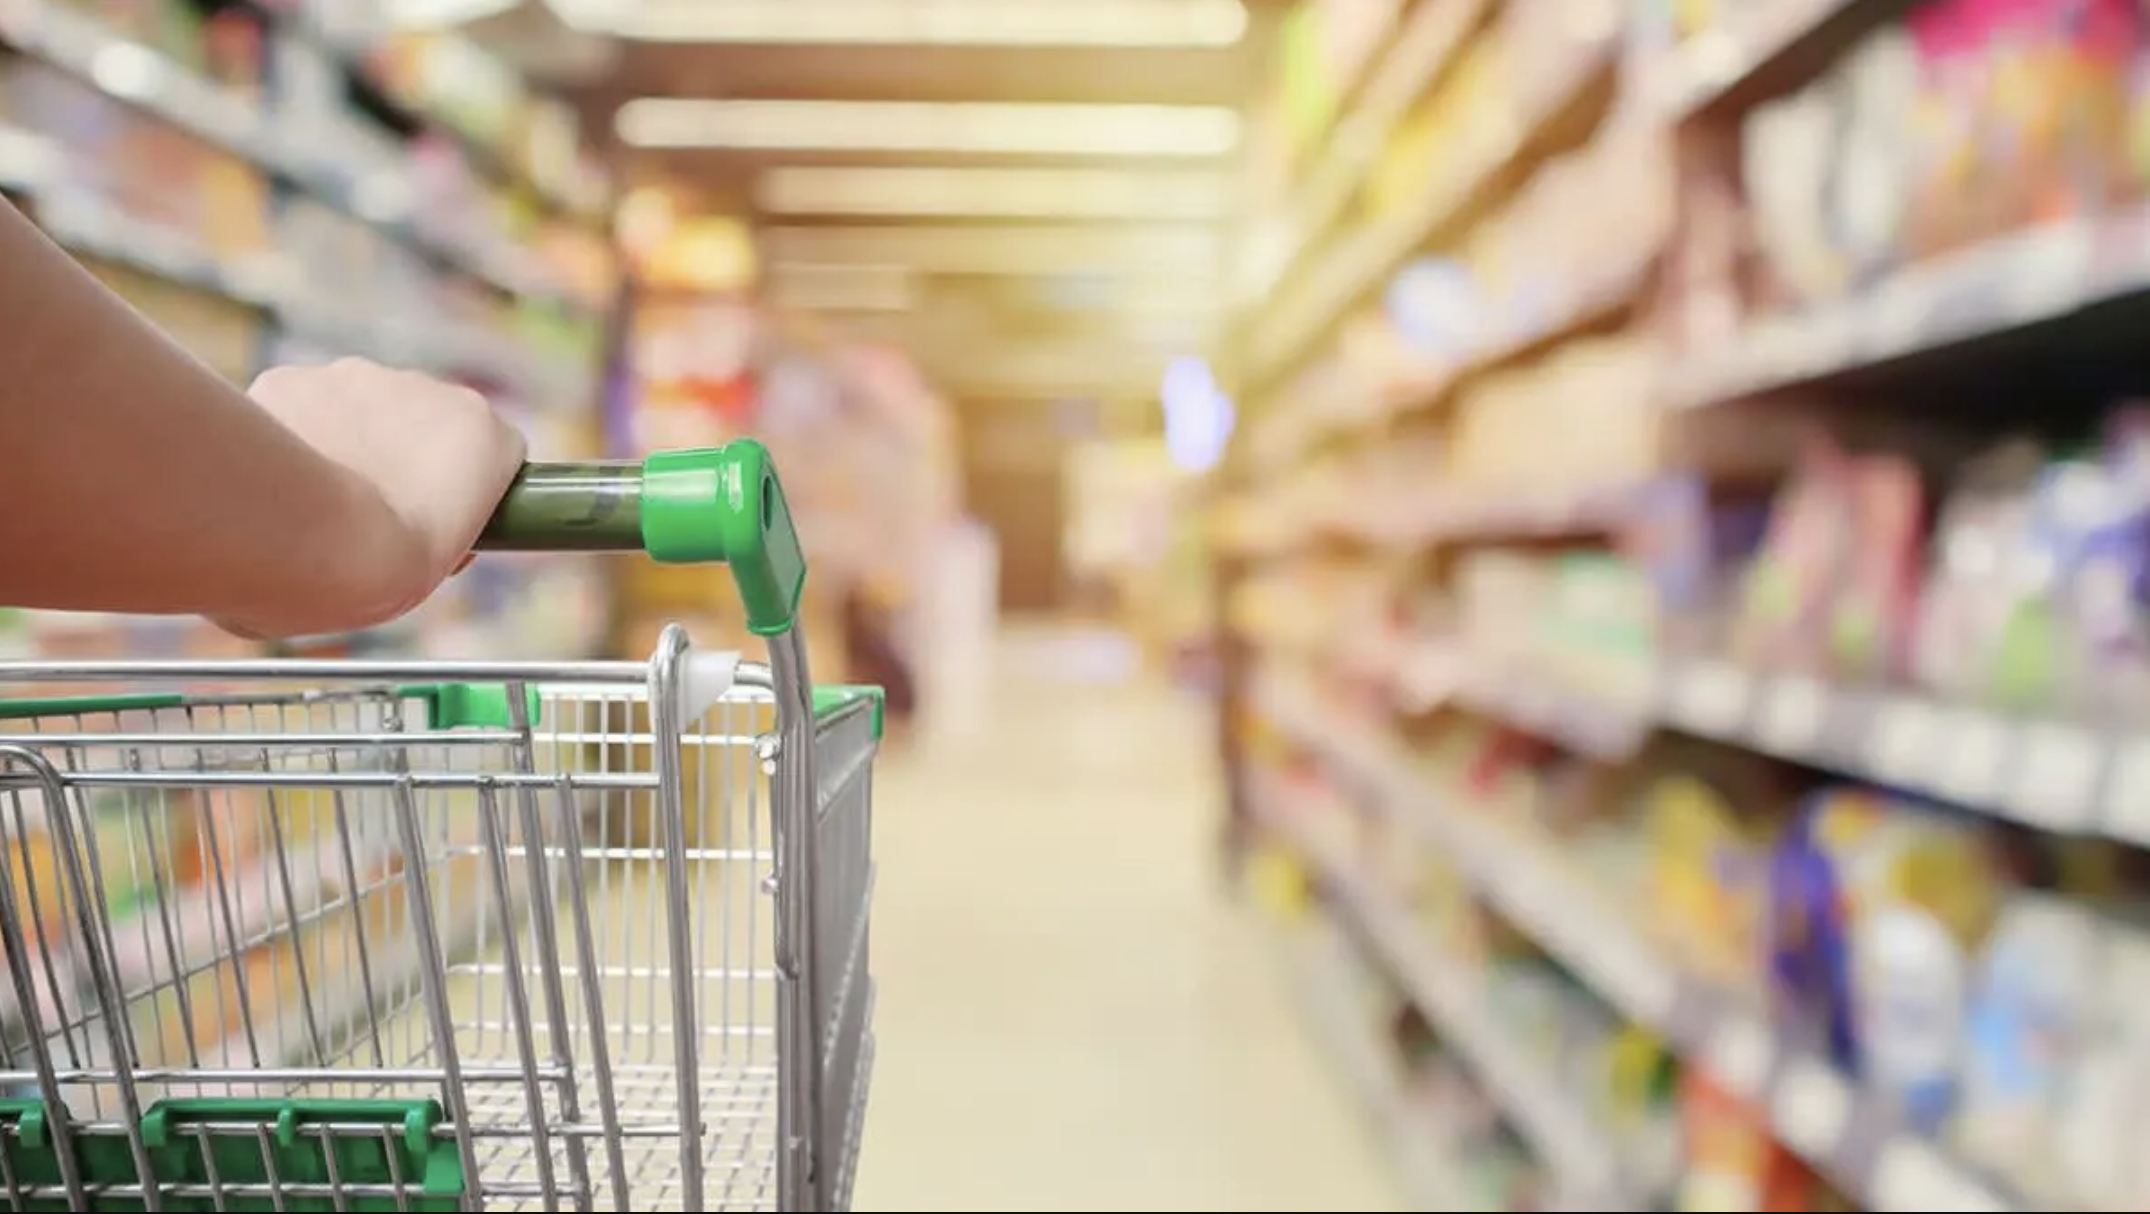 THE DO'S AND DON'TS FOR CORONAVIRUS GROCERY SHOPPING